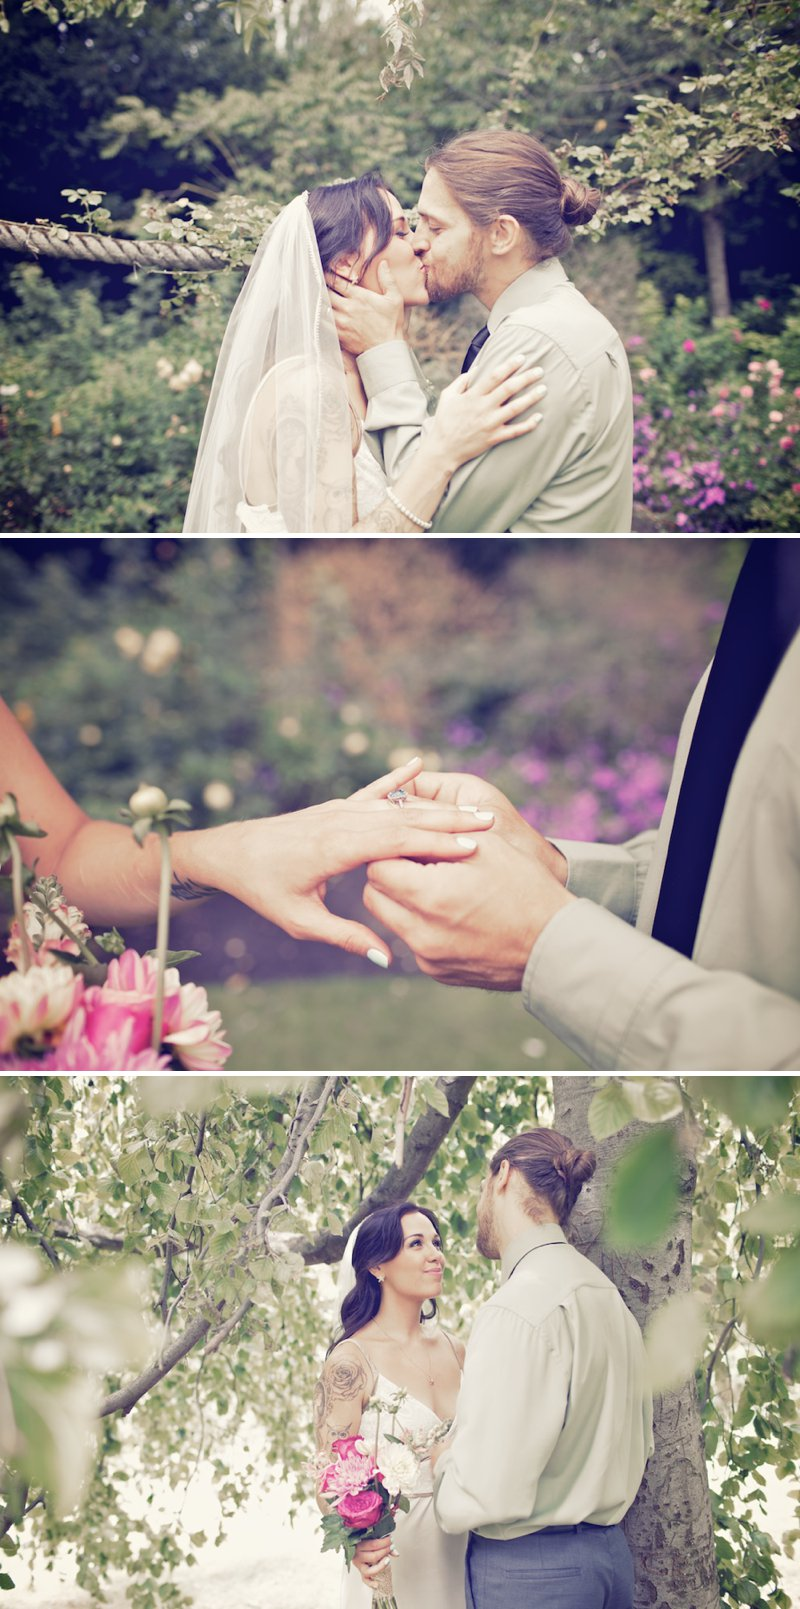 London Elopement Of Canadian Couple With Bride In Elegant Gown And Groom In Mint Shirt With Images In Regents Park 1